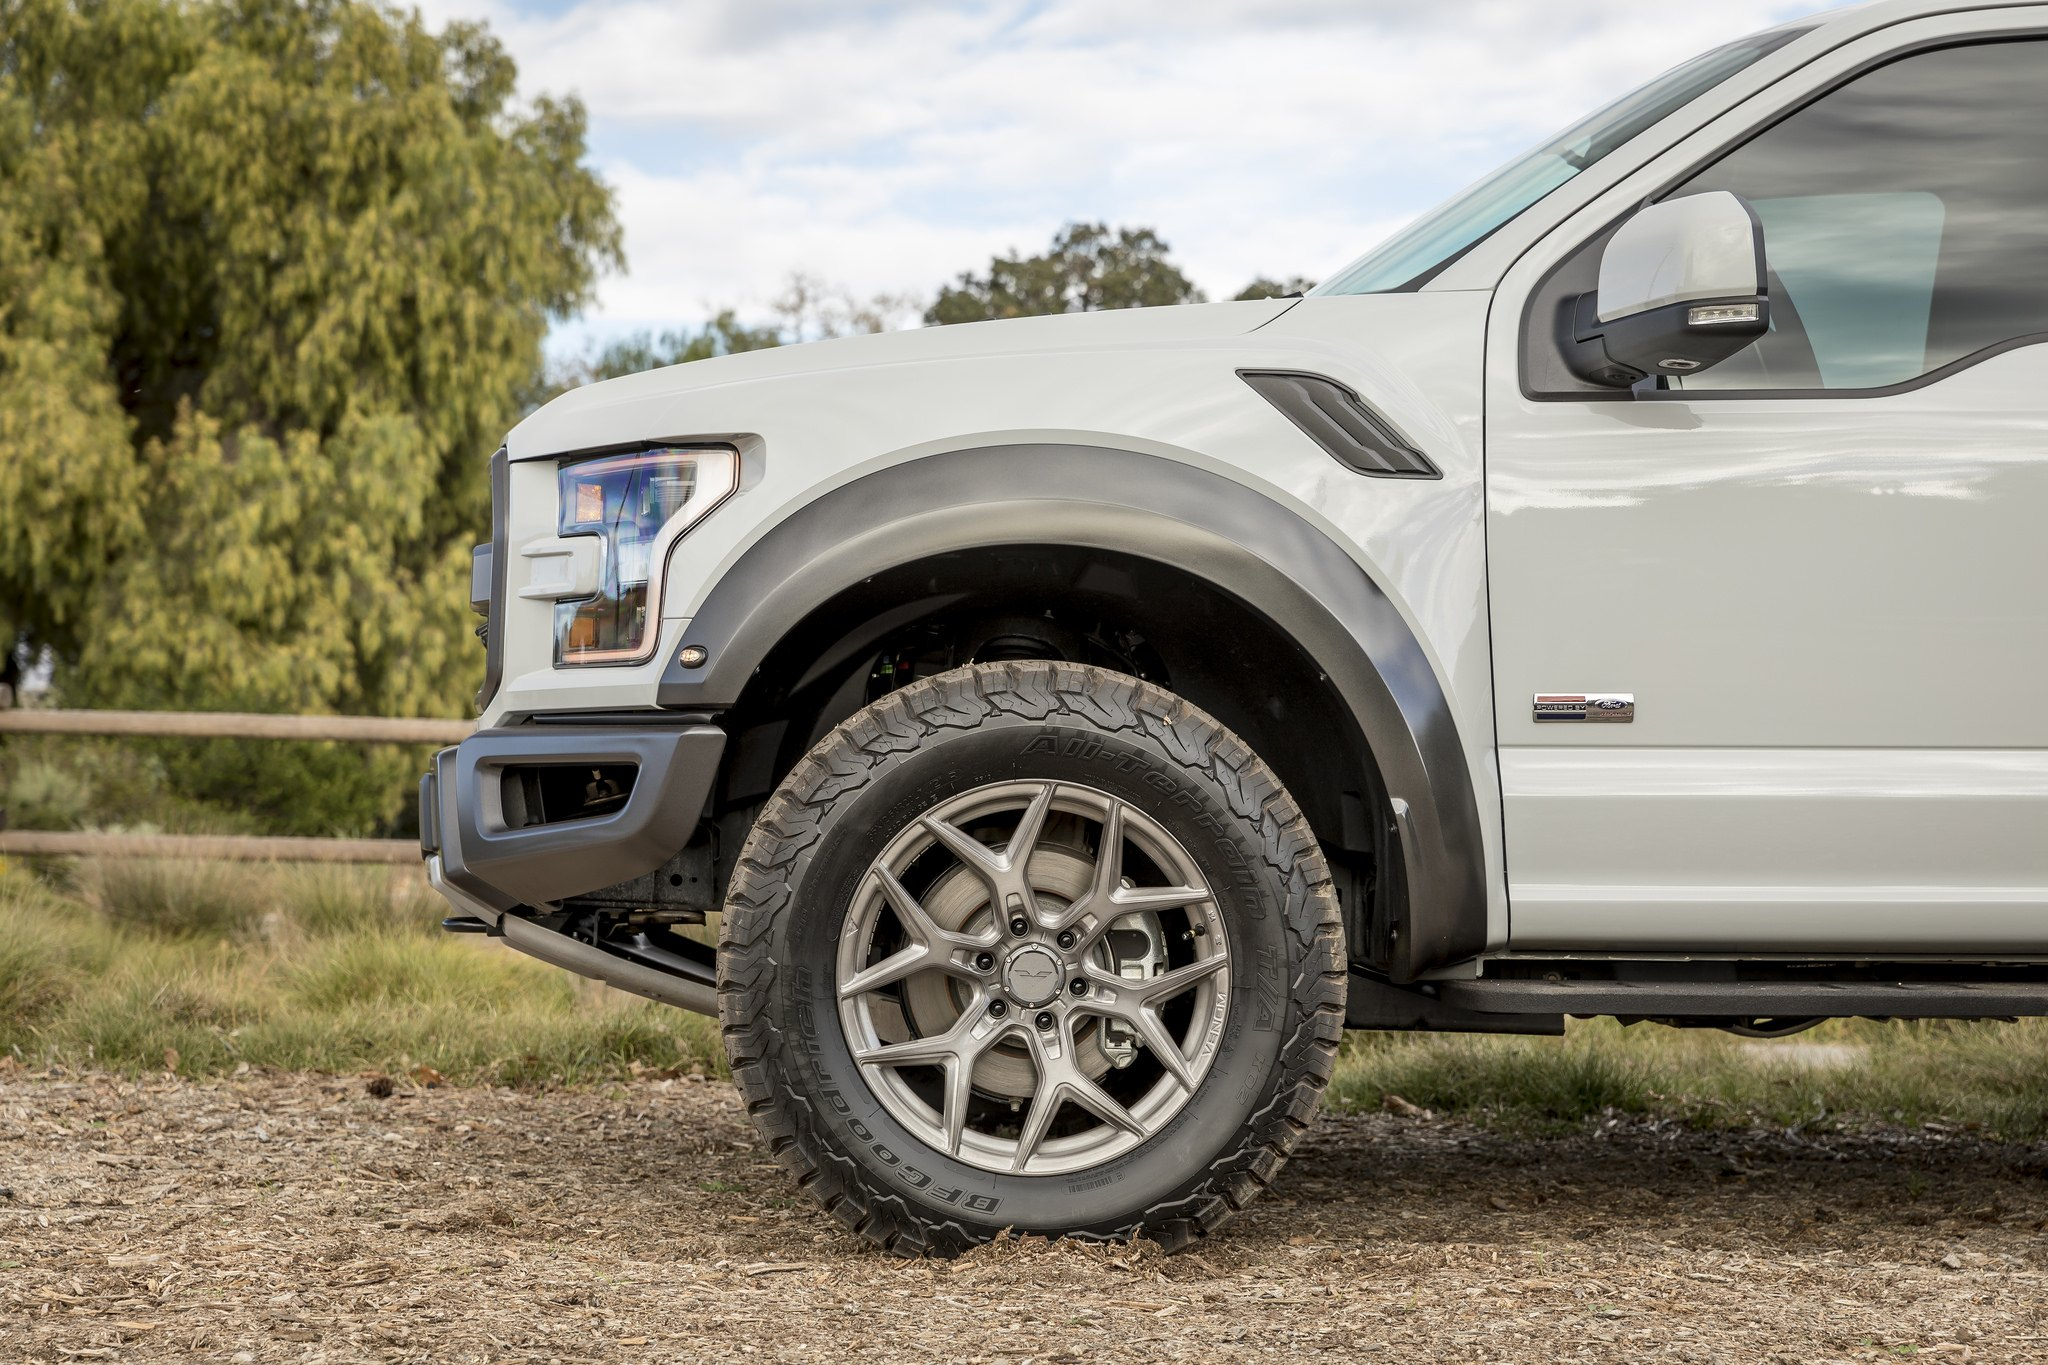 Gray Lifted Ford F-150 on BFGoodrich Tires - Photo by Vorsteiner